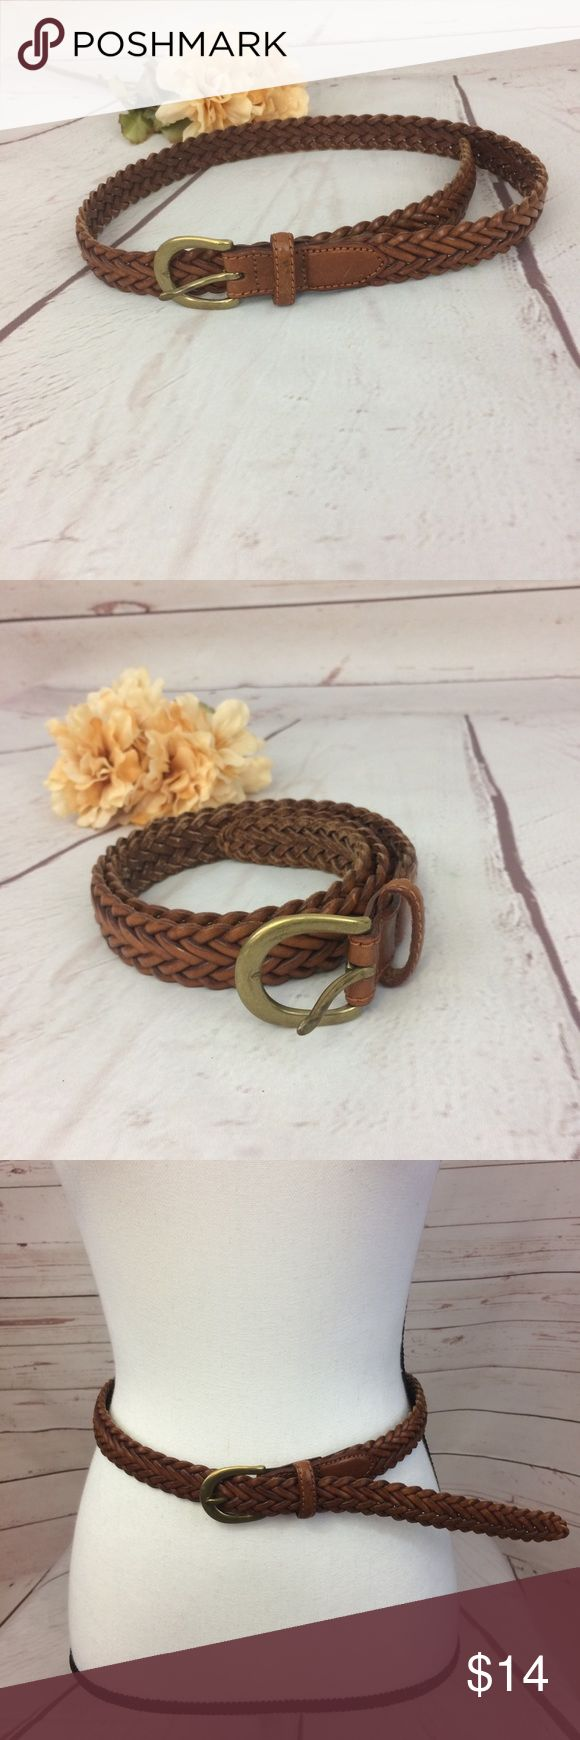 Brown Braided Faux Leather Belt With Brass Buckle Braided brown faux leather belt with solid brass buckle. Fully adjustable with no set holes. Excellent condition!! bjcich Accessories Belts